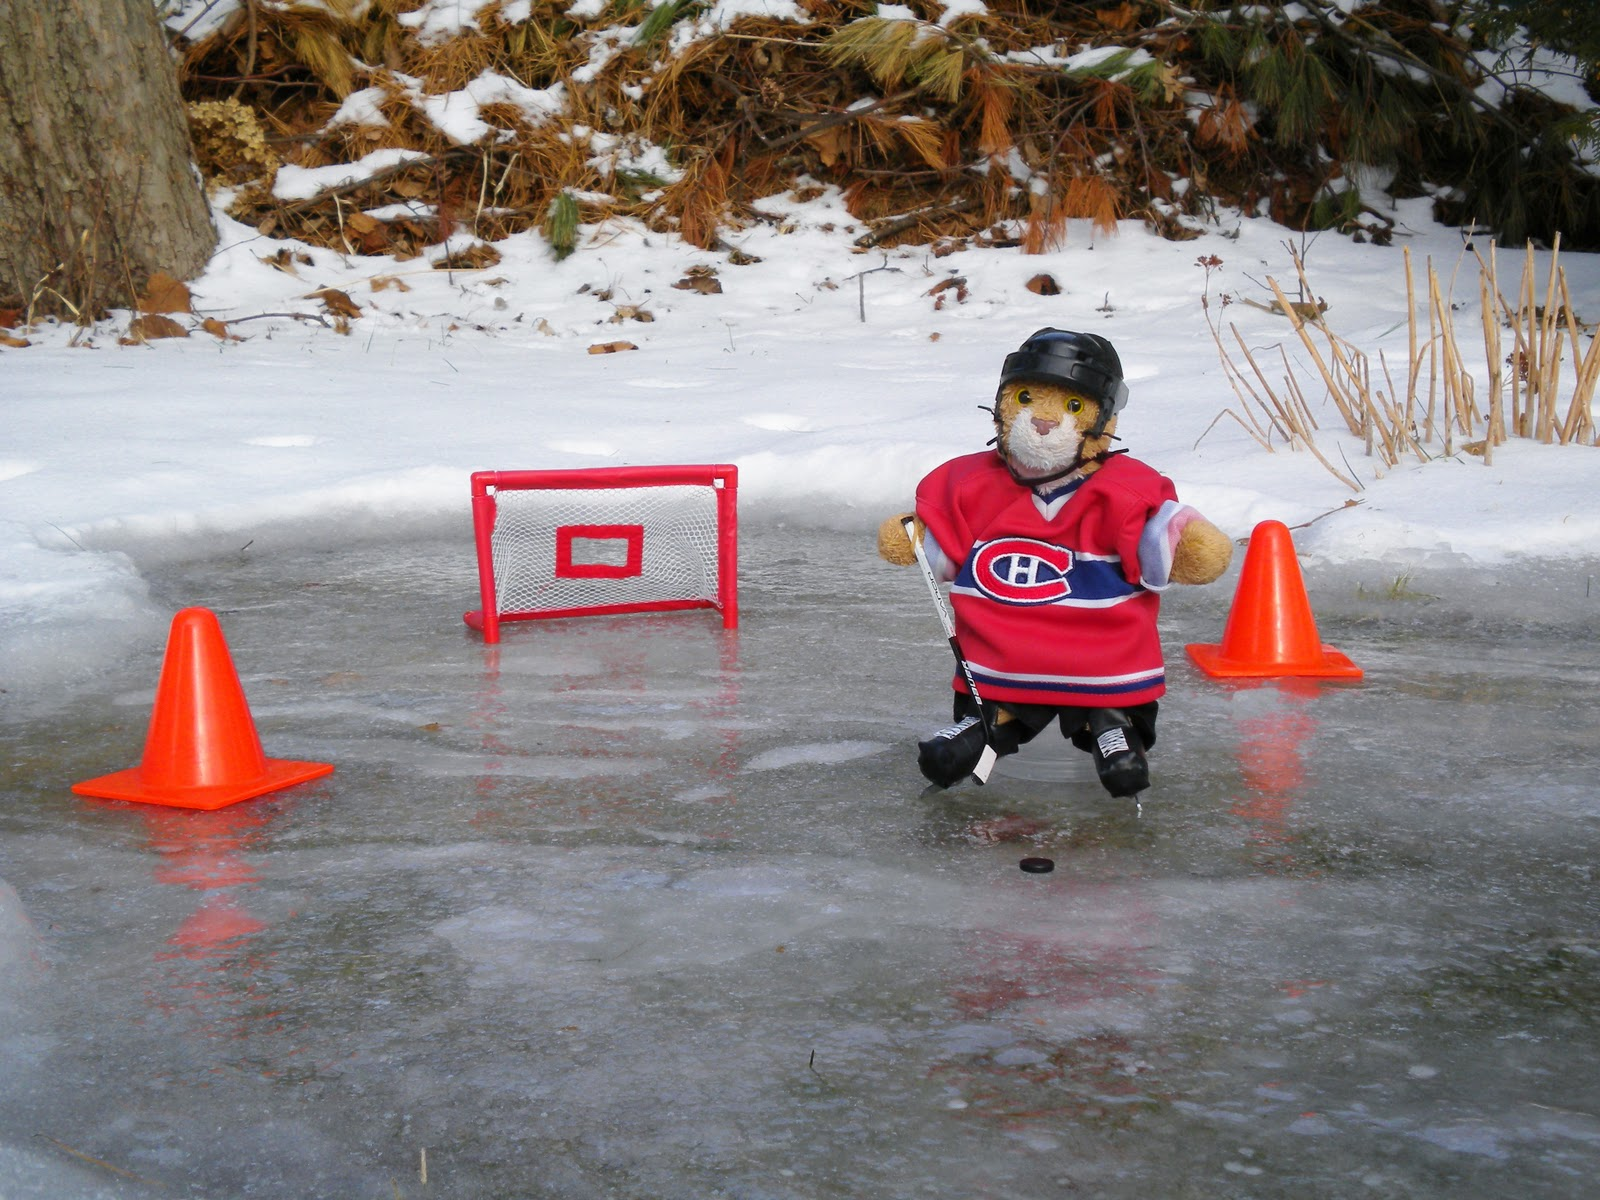 backyard hockey images reverse search